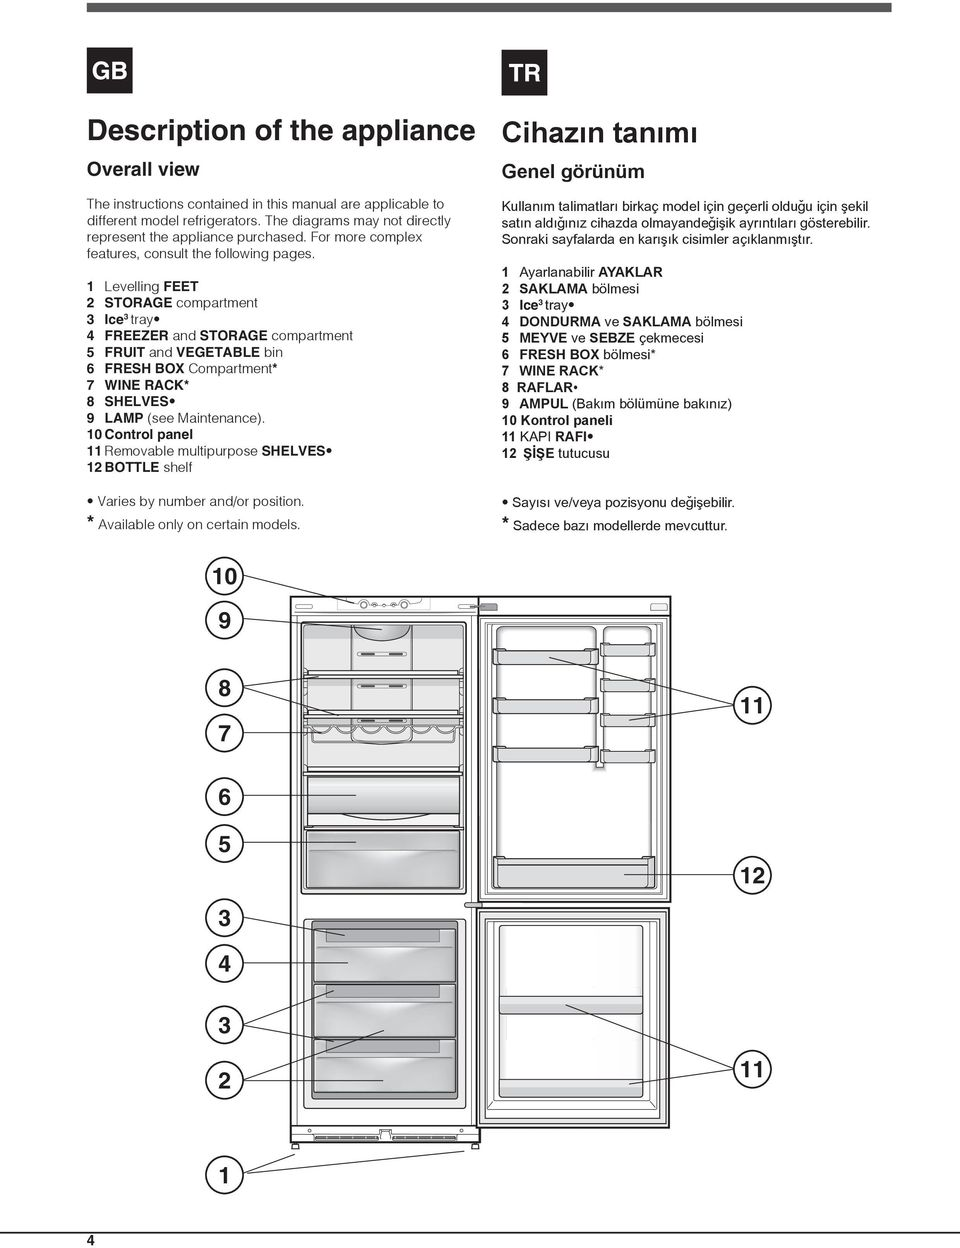 1 Levelling FEET 2 STORAGE compartment 3 Ice 3 tray 4 FREEZER and STORAGE compartment 5 FRUIT and VEGETABLE bin 6 FRESH BOX Compartment* 7 WINE RACK* 8 SHELVES 9 LAMP (see Maintenance).